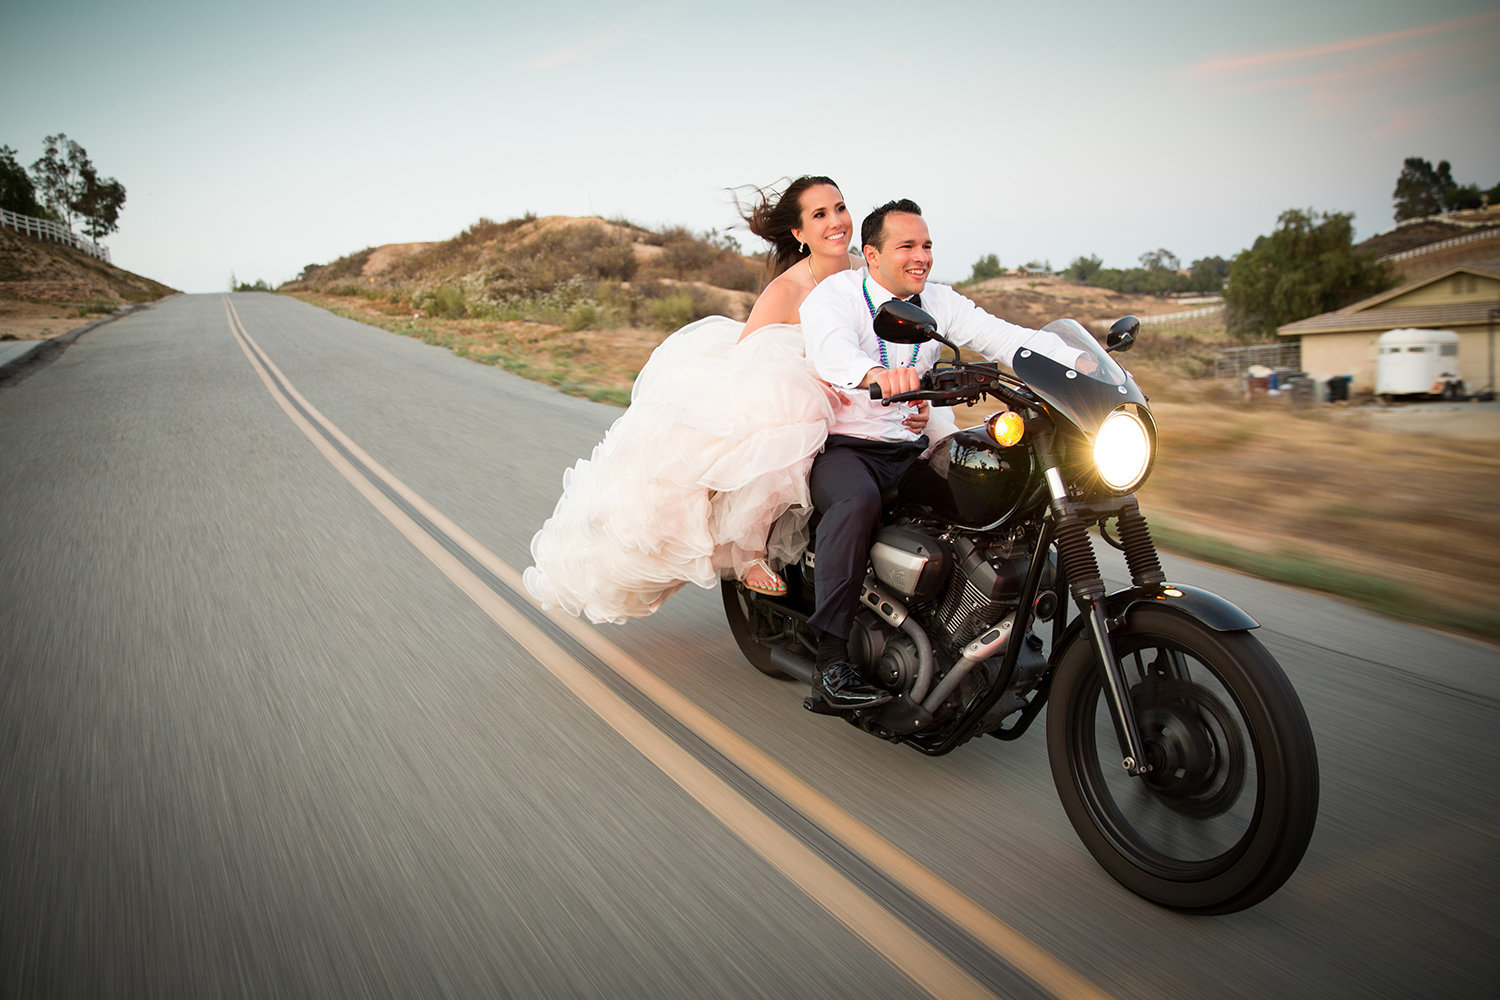 Temecula wedding photos motorcycle driving fun